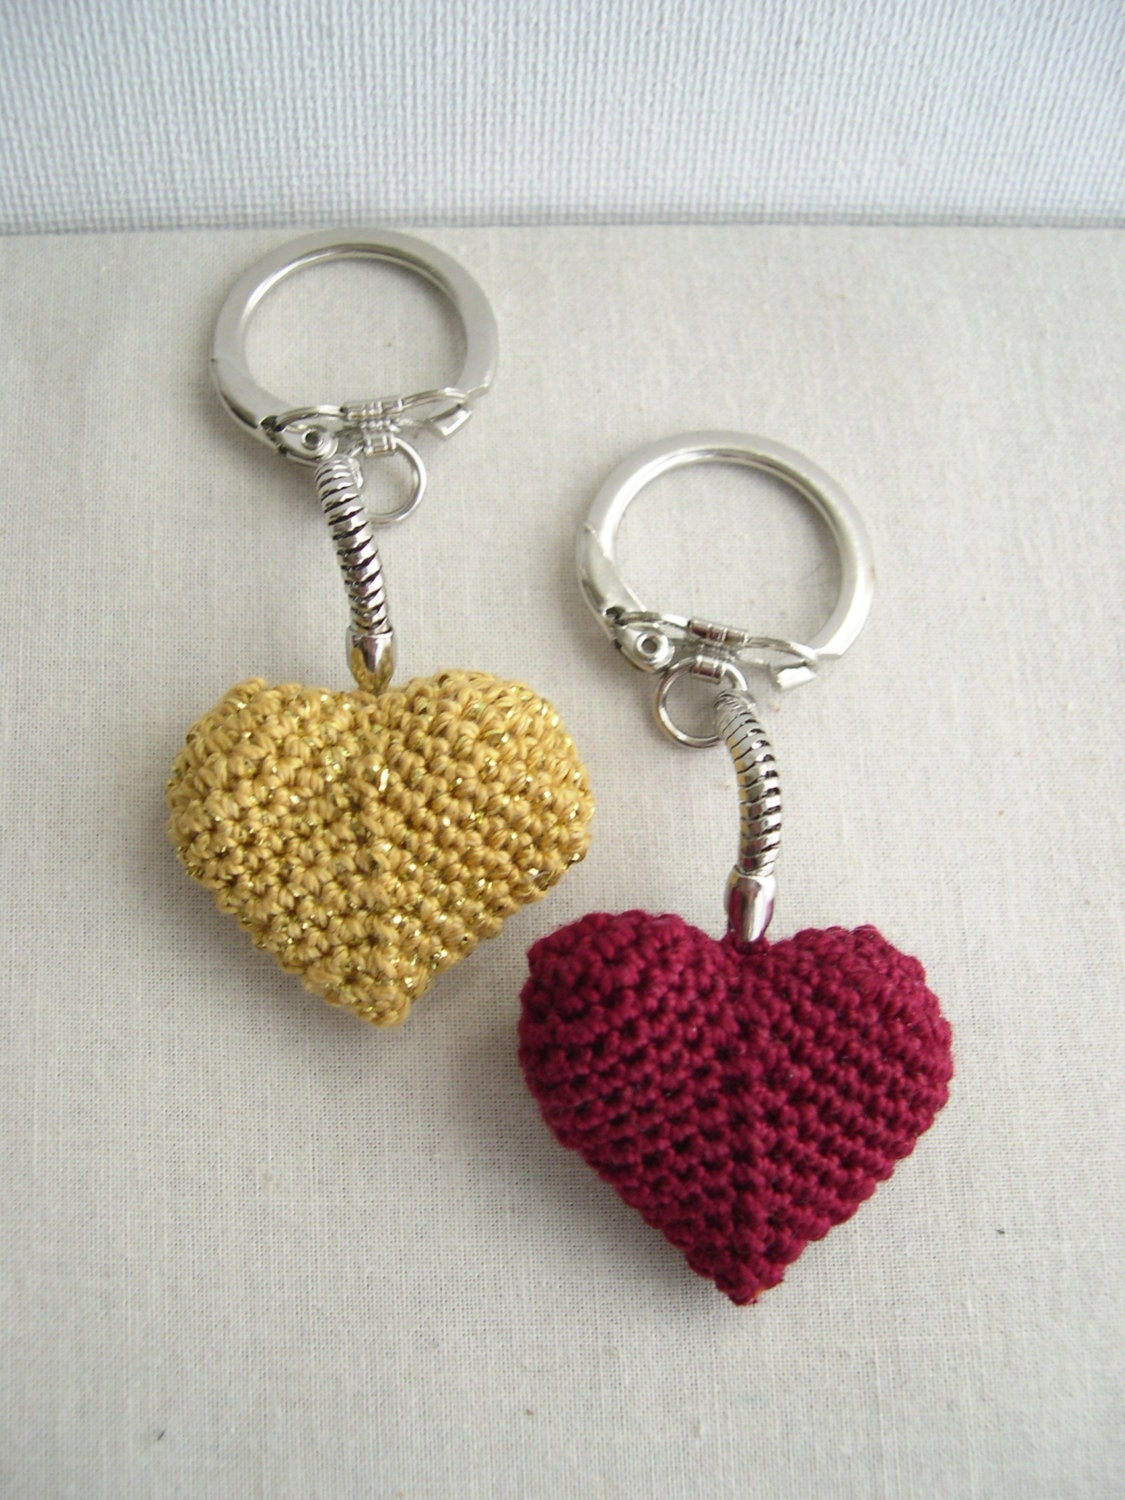 Red Heart keychain - Golden Keychain - Heart keychain - crochet ...